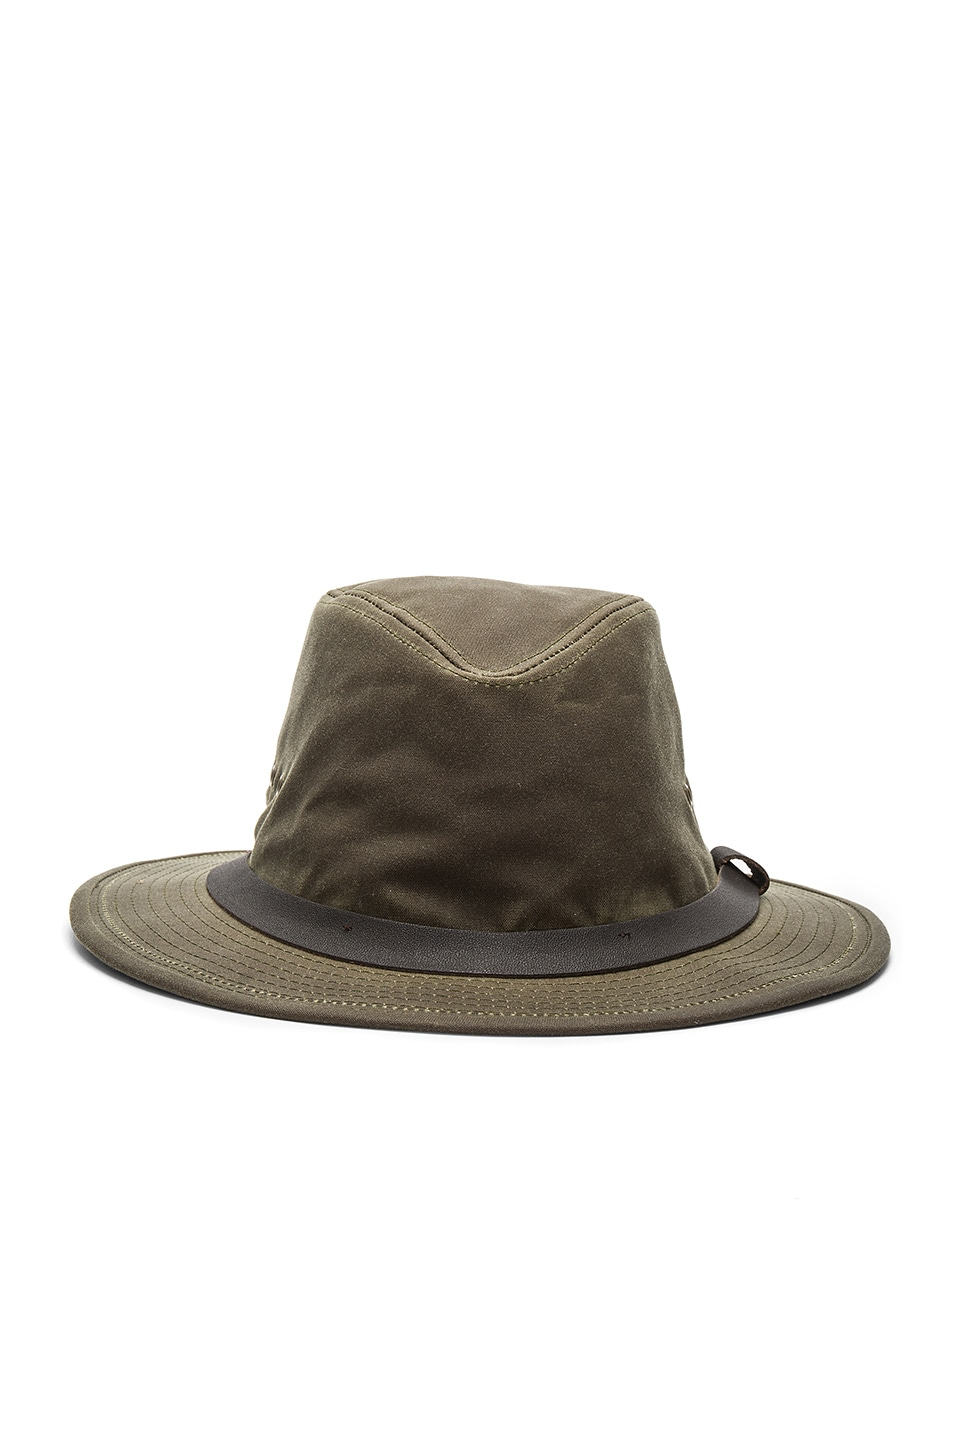 Photo of Shelter Packer Hat by Filson men clothes